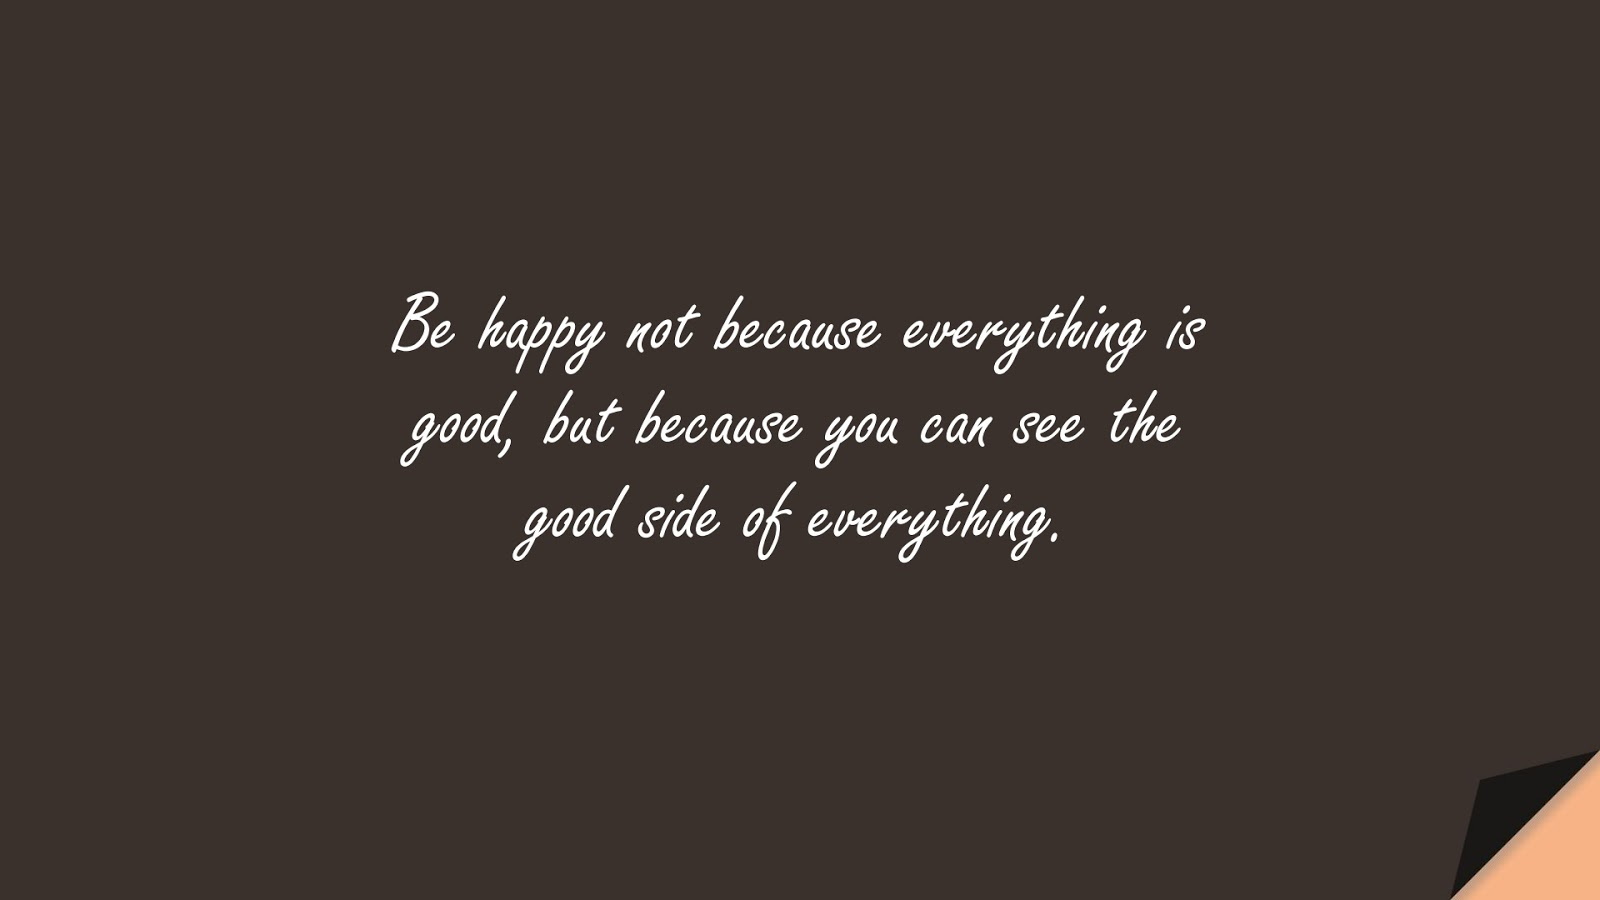 Be happy not because everything is good, but because you can see the good side of everything.FALSE